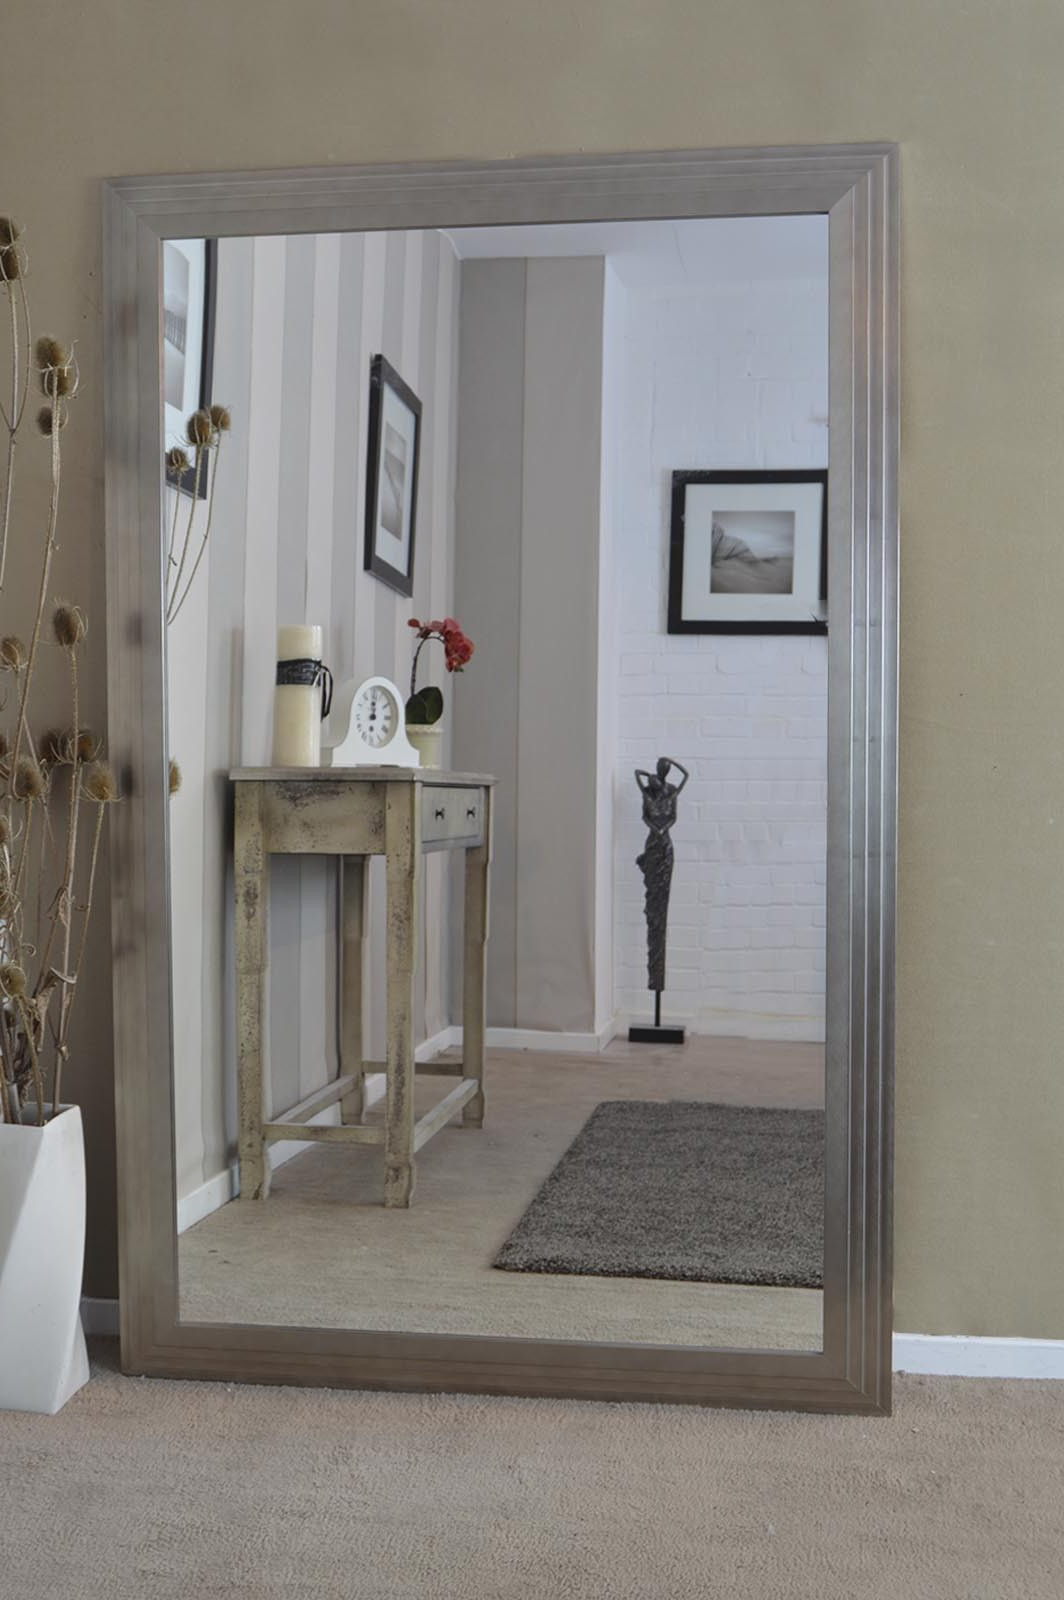 5 Tips For Fooling The Eye And Making A Room Look Bigger (View 3 of 20)